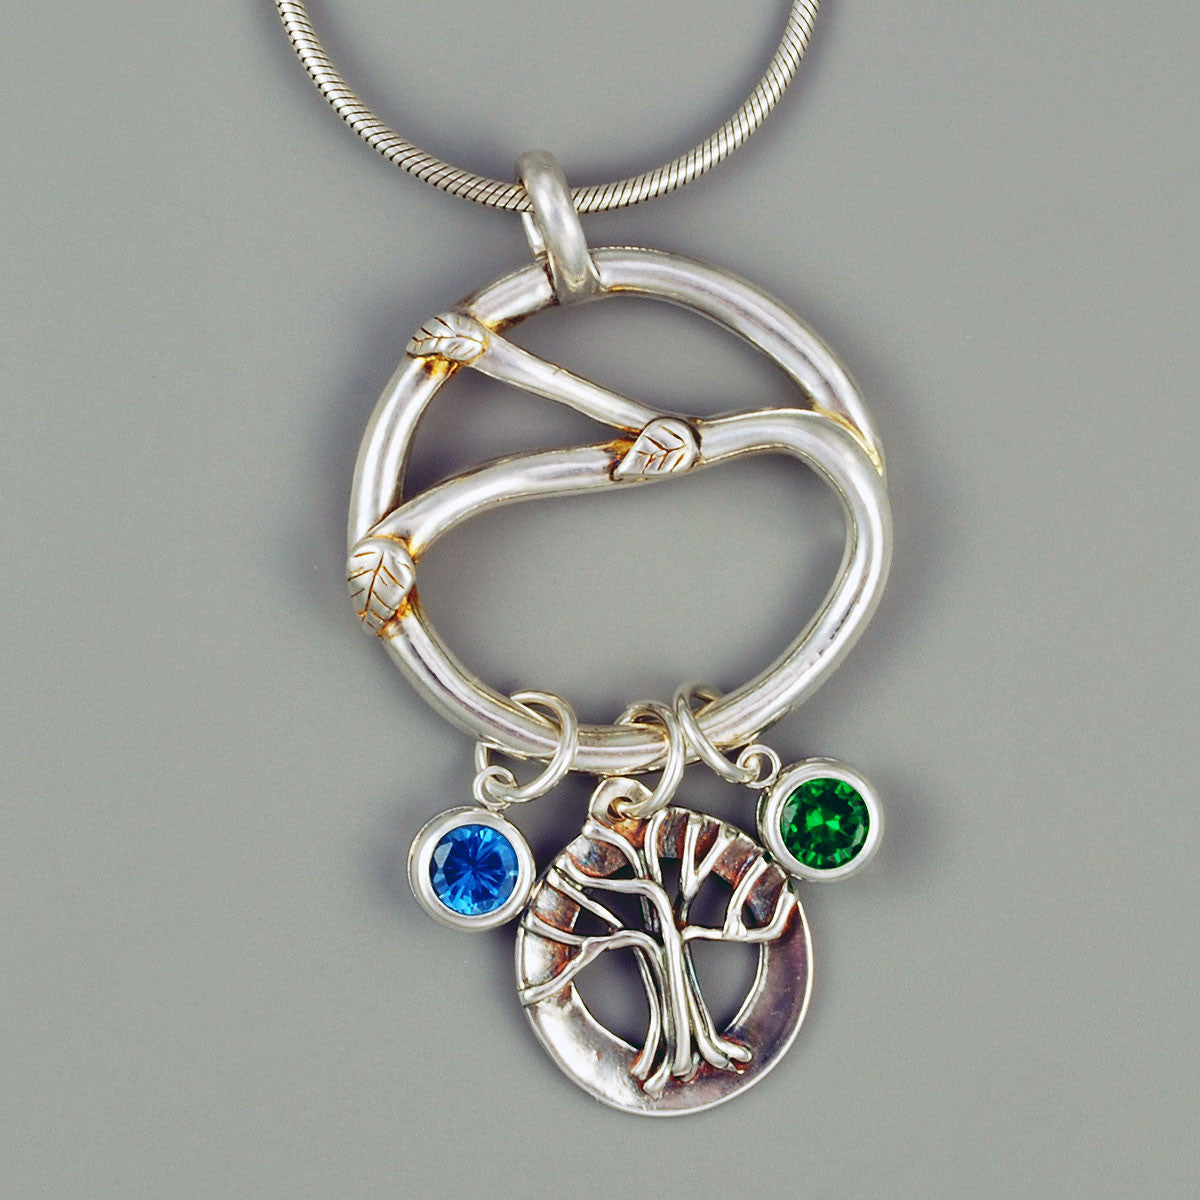 Circle of life charm holder pendant tevajane aloadofball Gallery